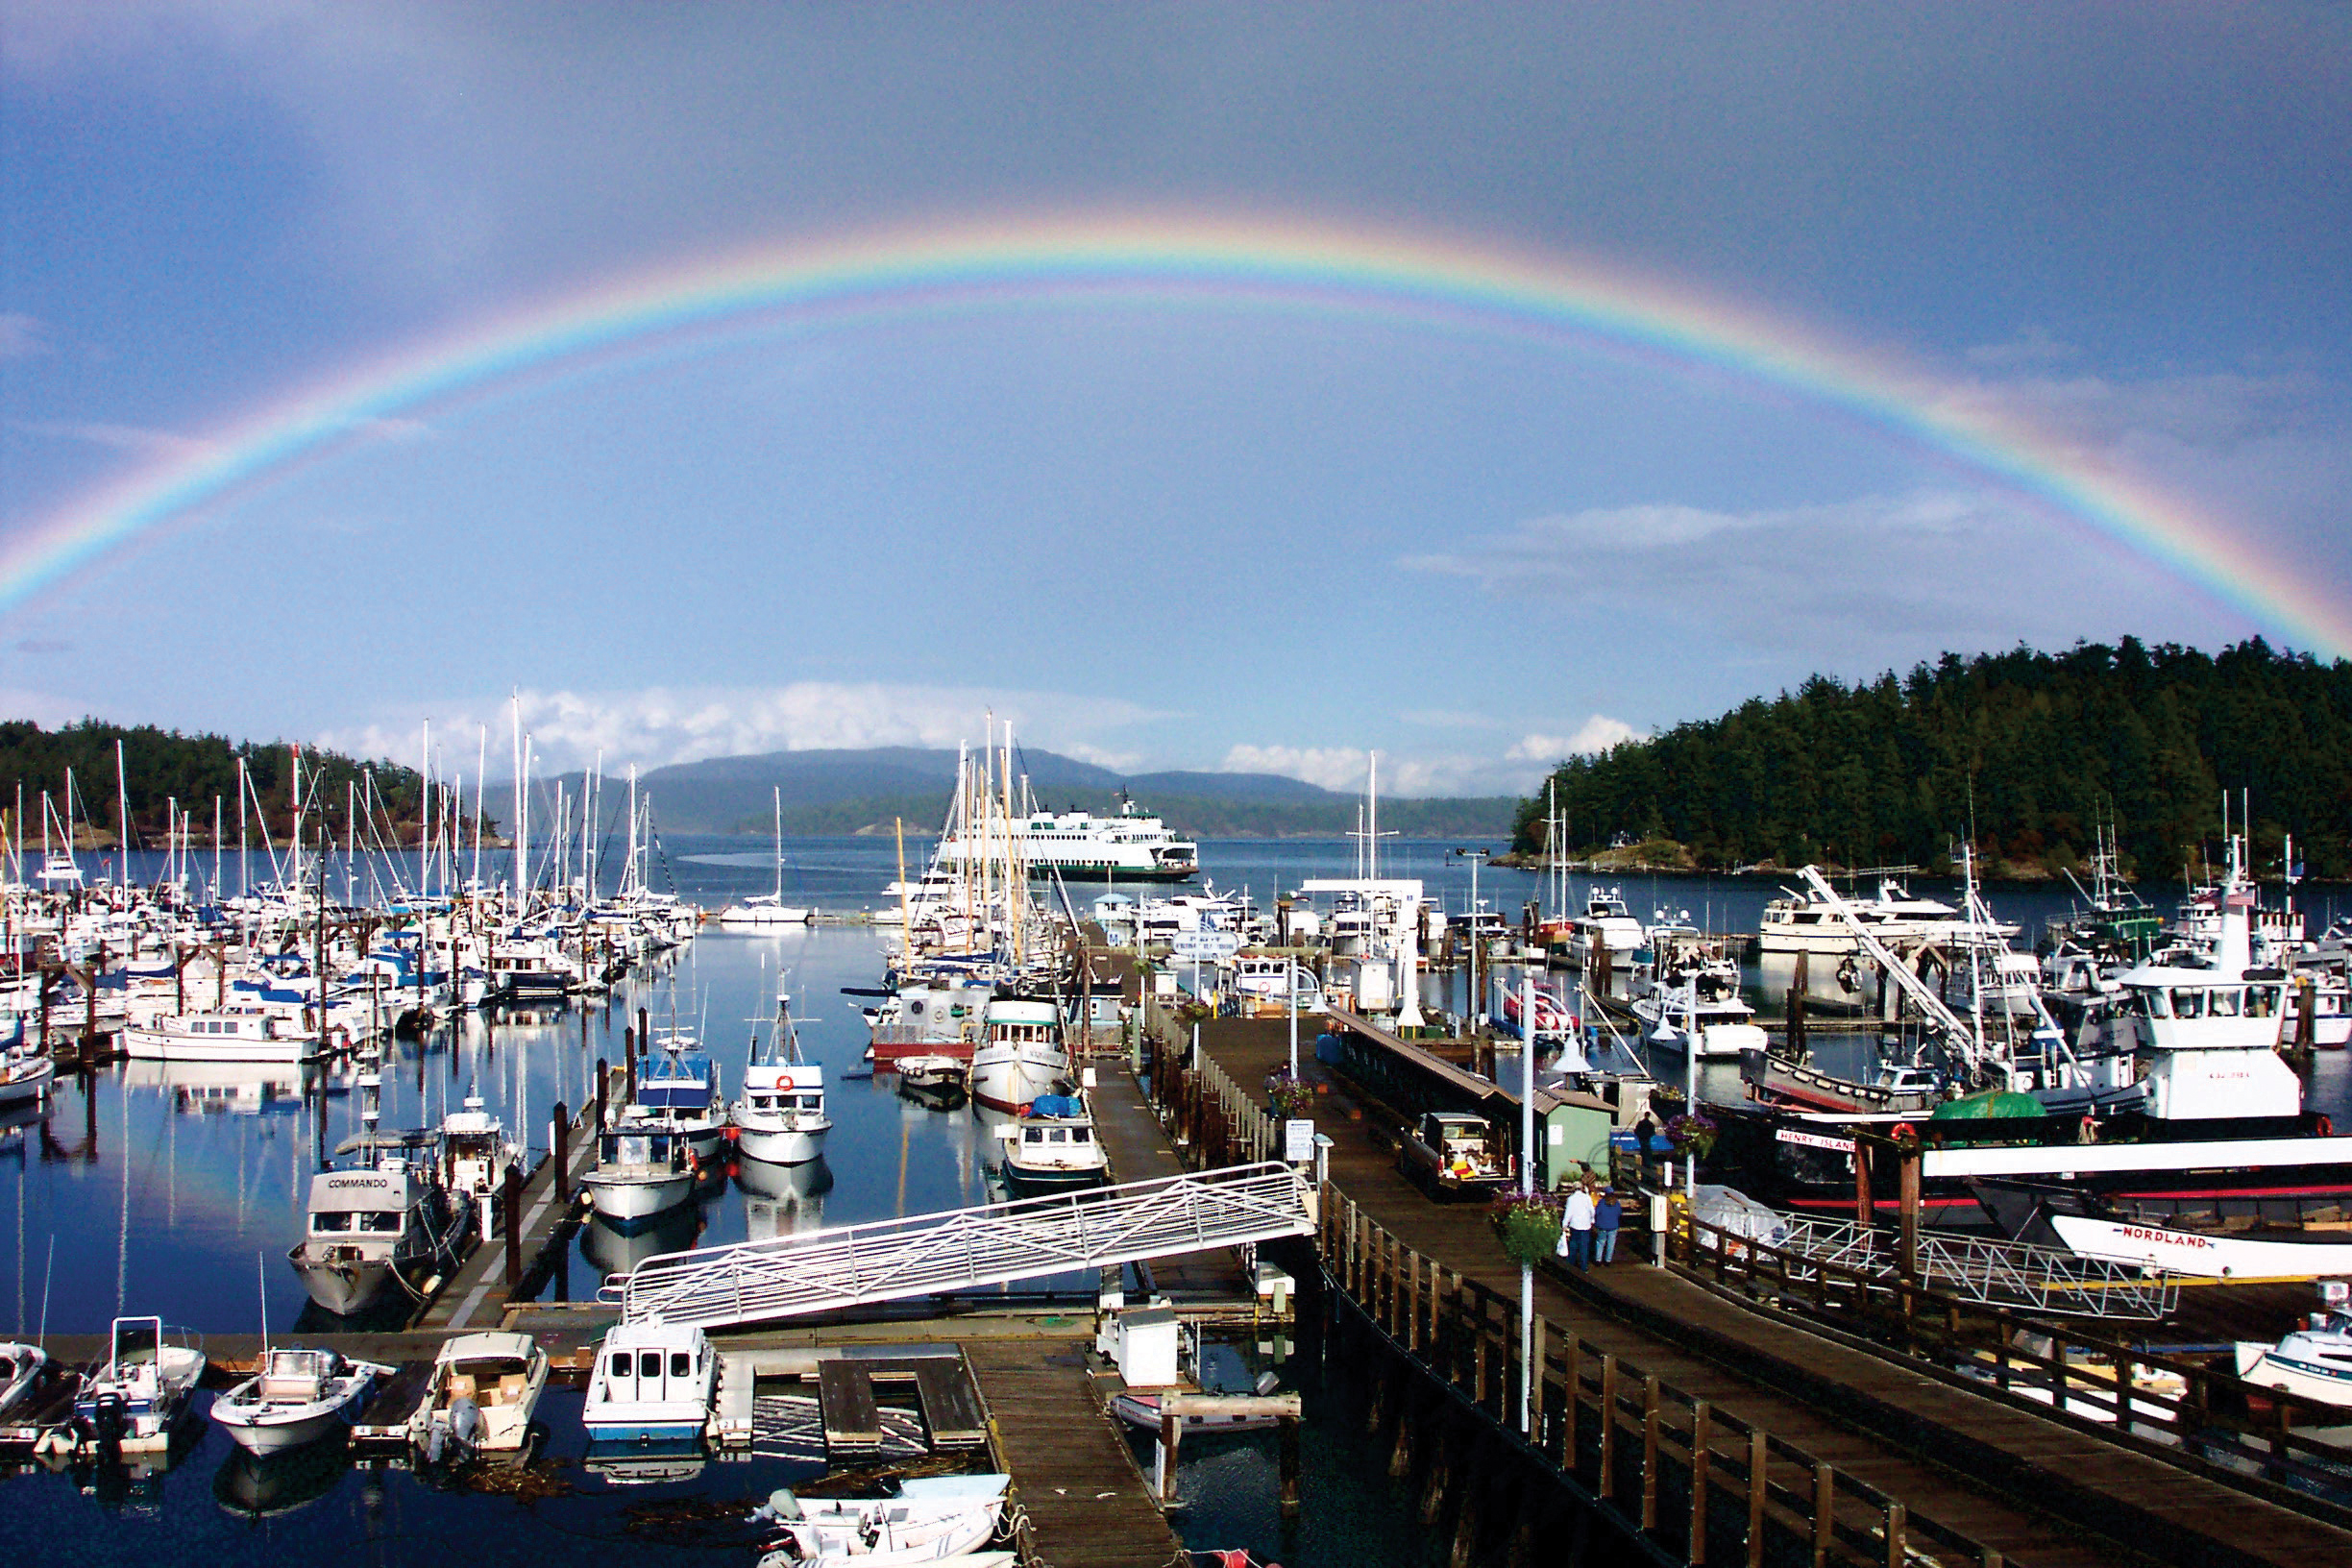 A rainbow arcs over Friday Harbor, on San Juan Island. Walk here from the airport to shop, dine, or board a whale watching tour. Photo courtesy San Juan Islands Visitors Bureau.